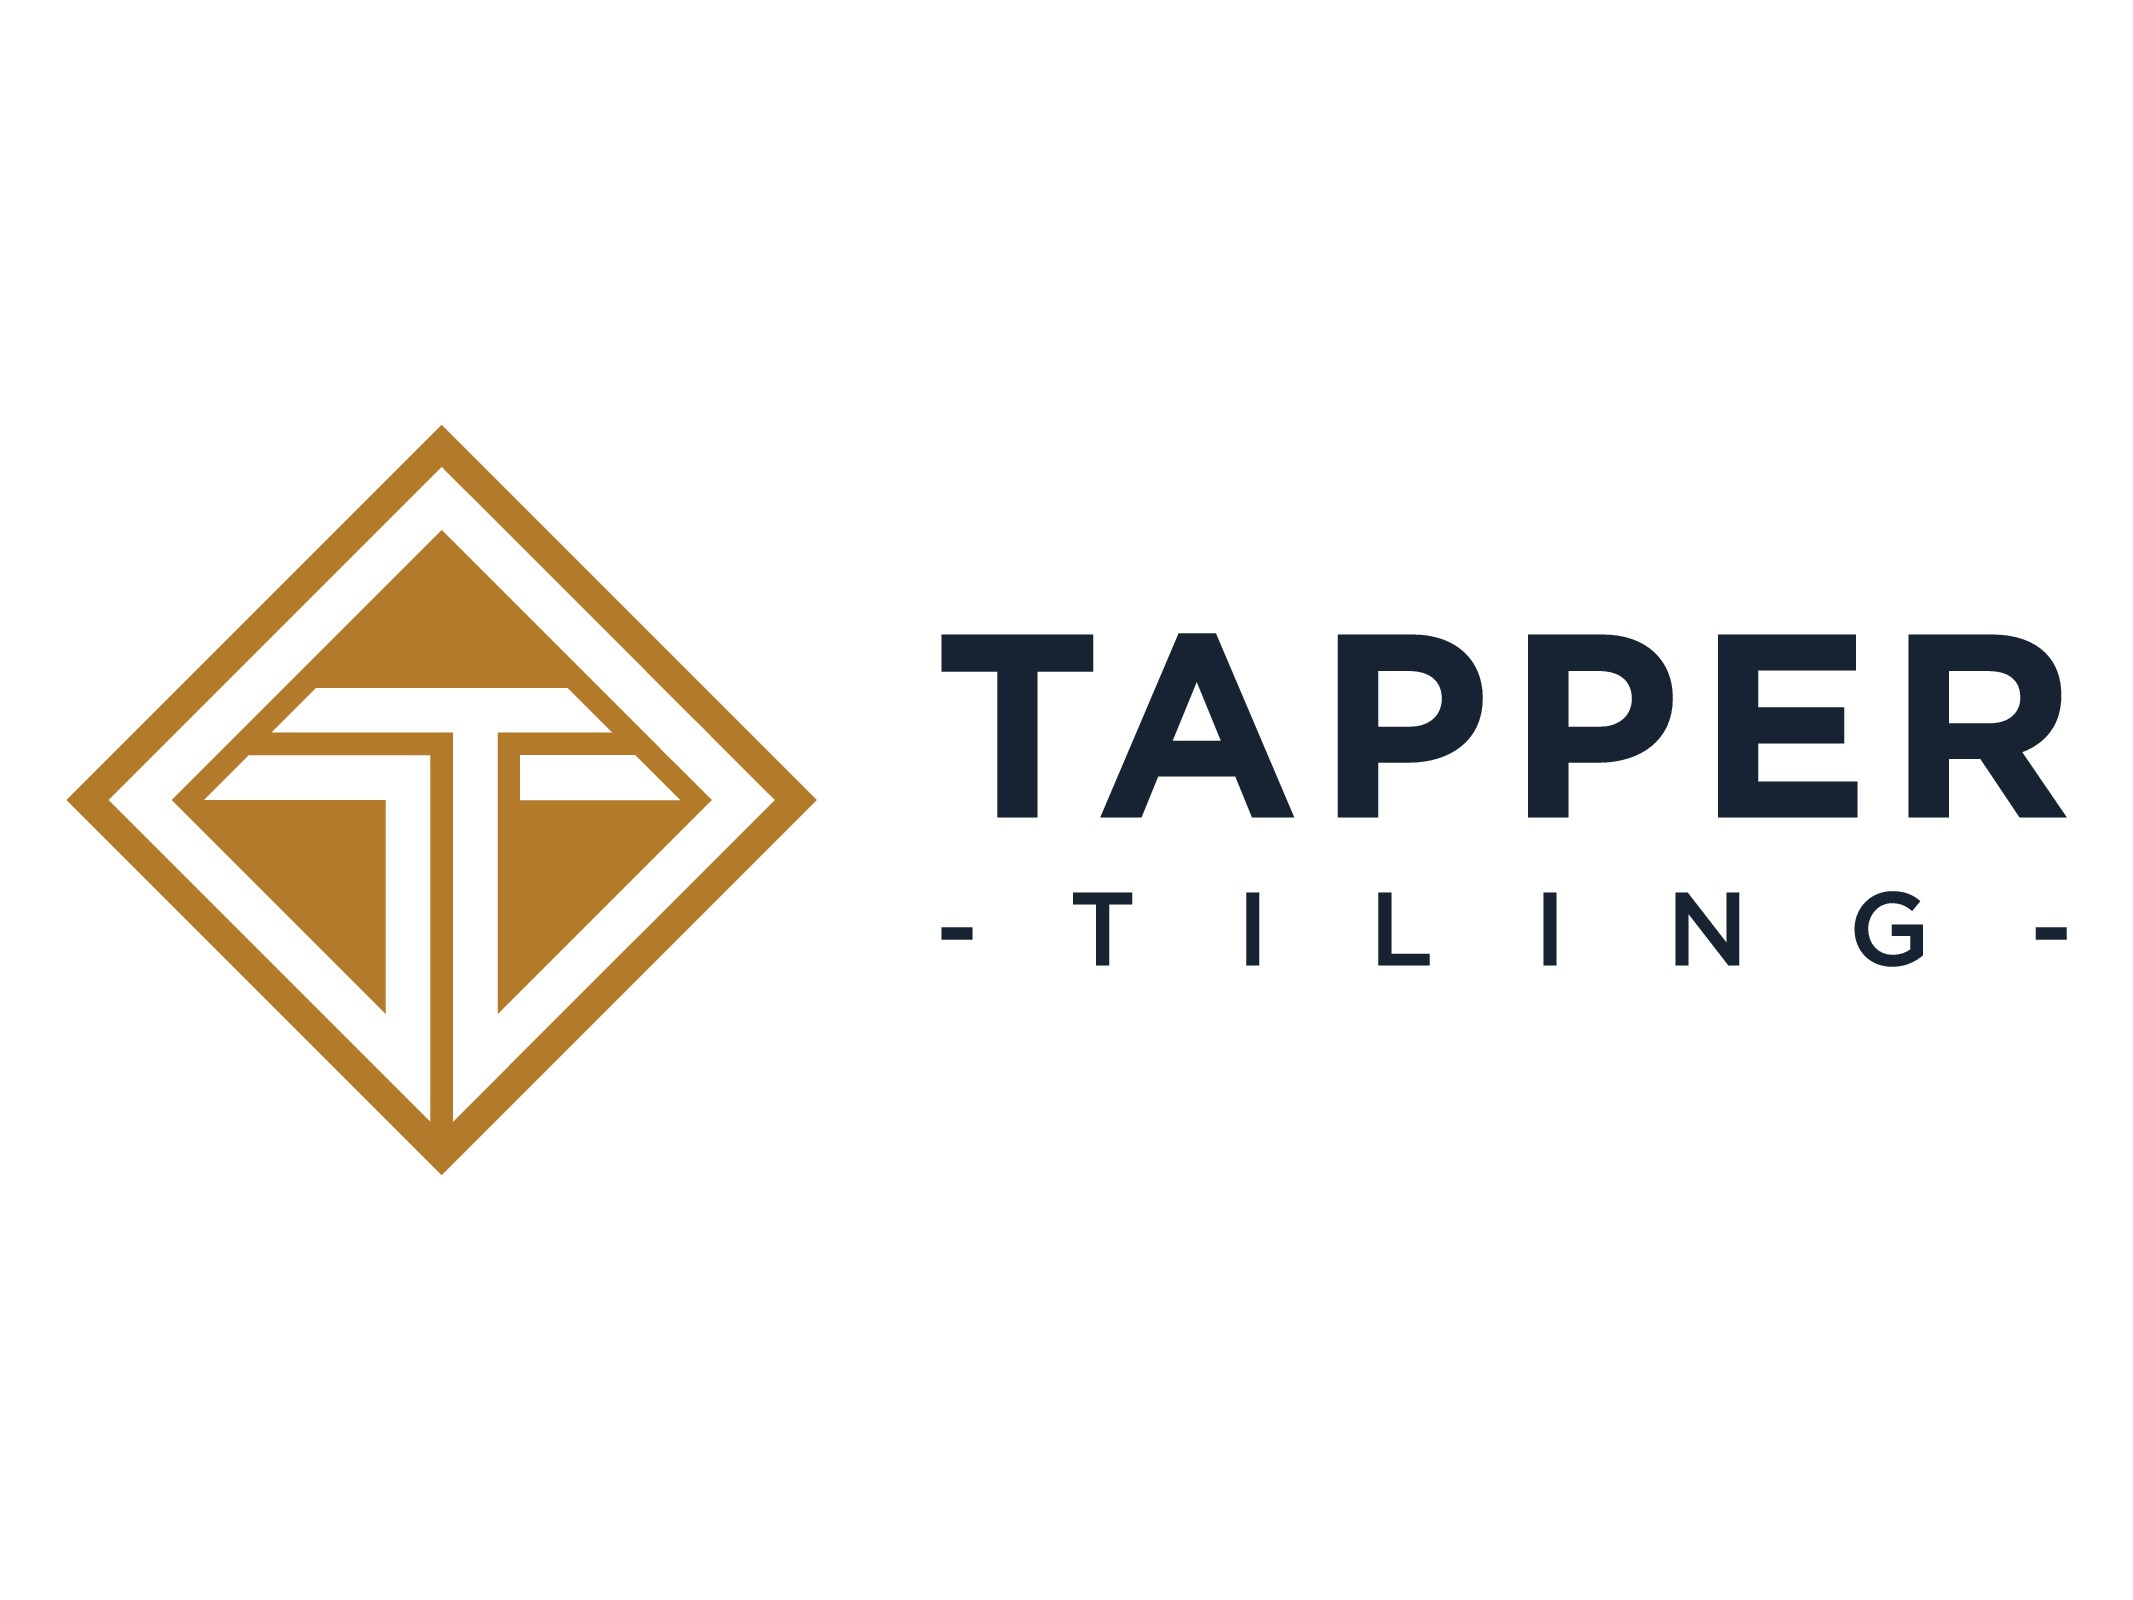 New Tiling business wants a bespoke identity logo.